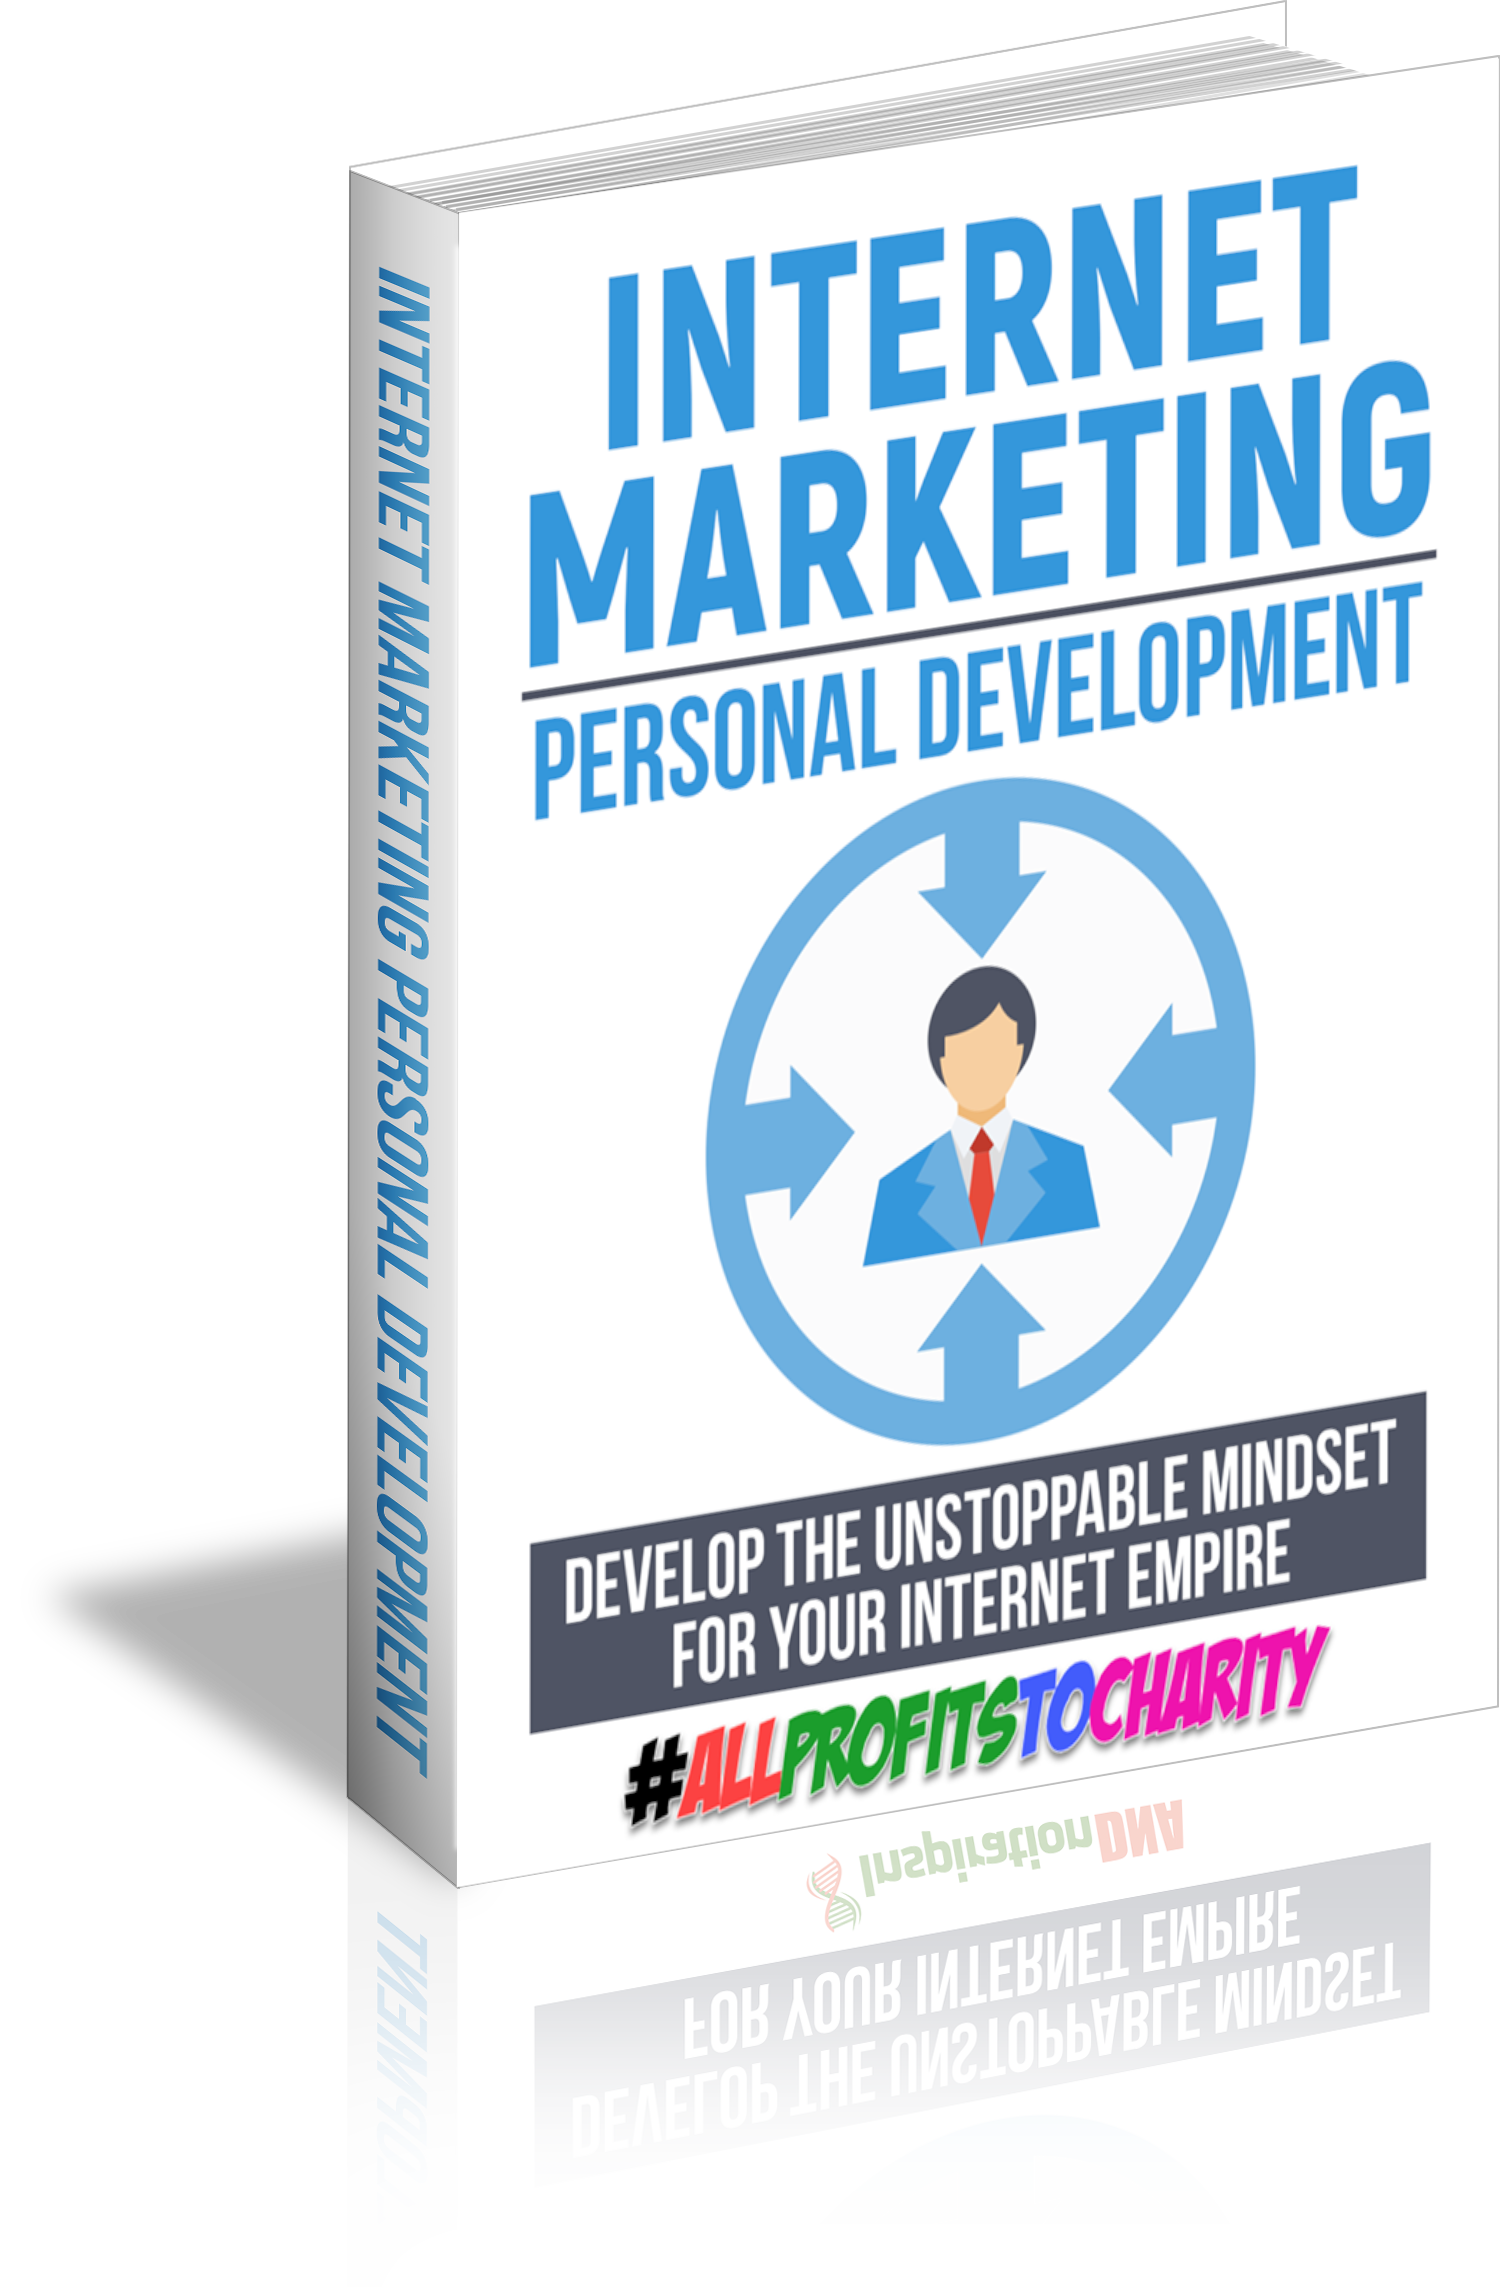 Internet Marketing Personal Development cover